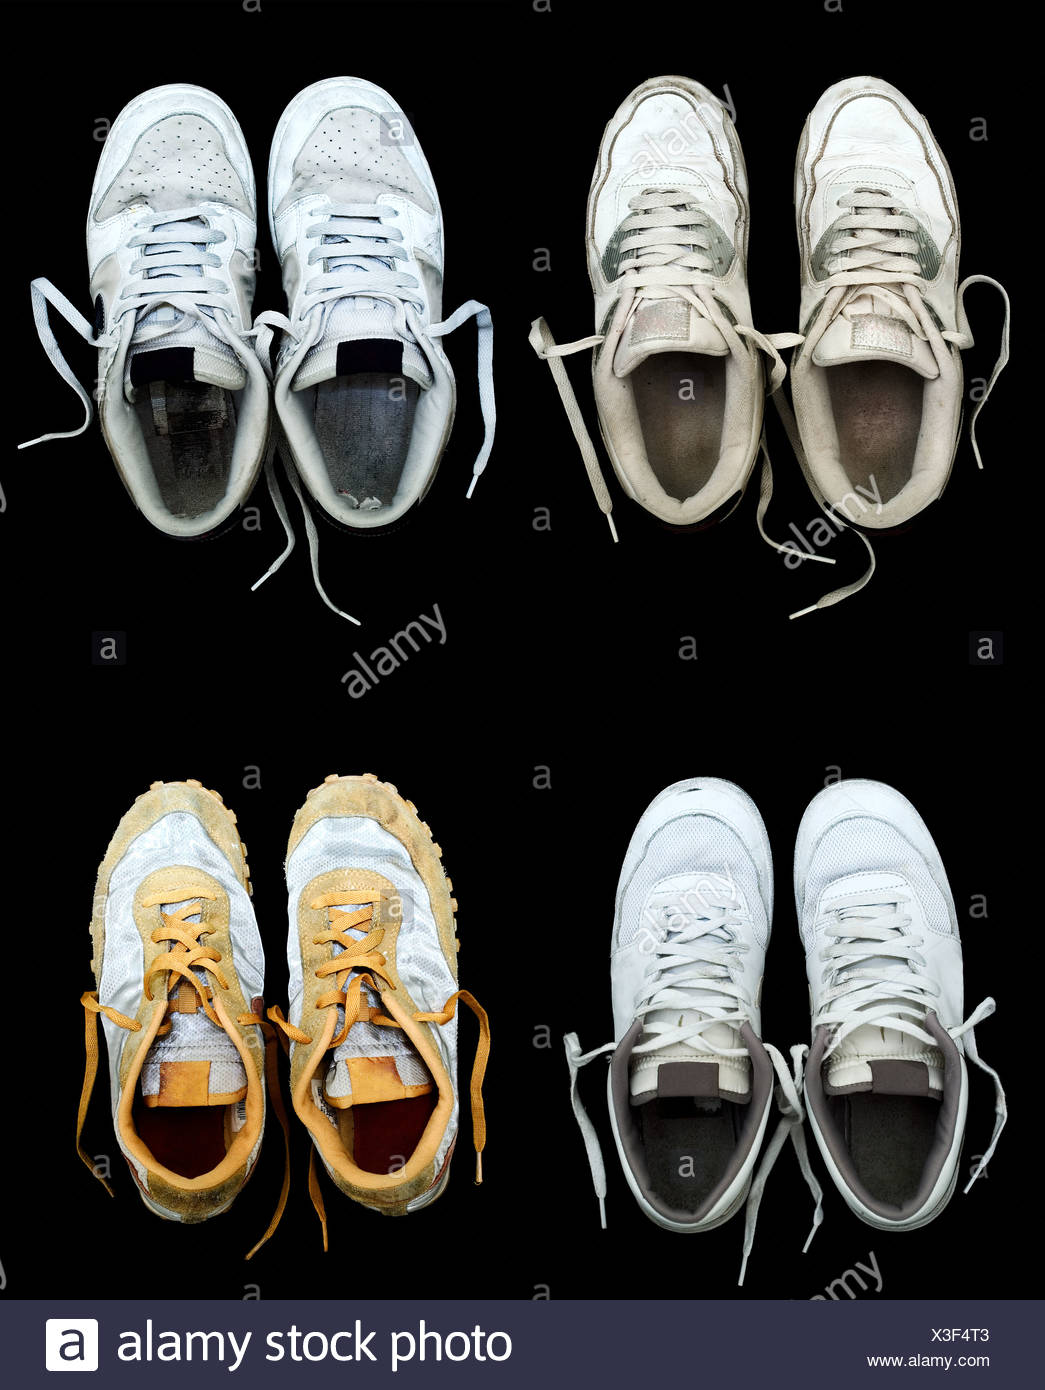 Four pairs of sports trainers - Stock Image